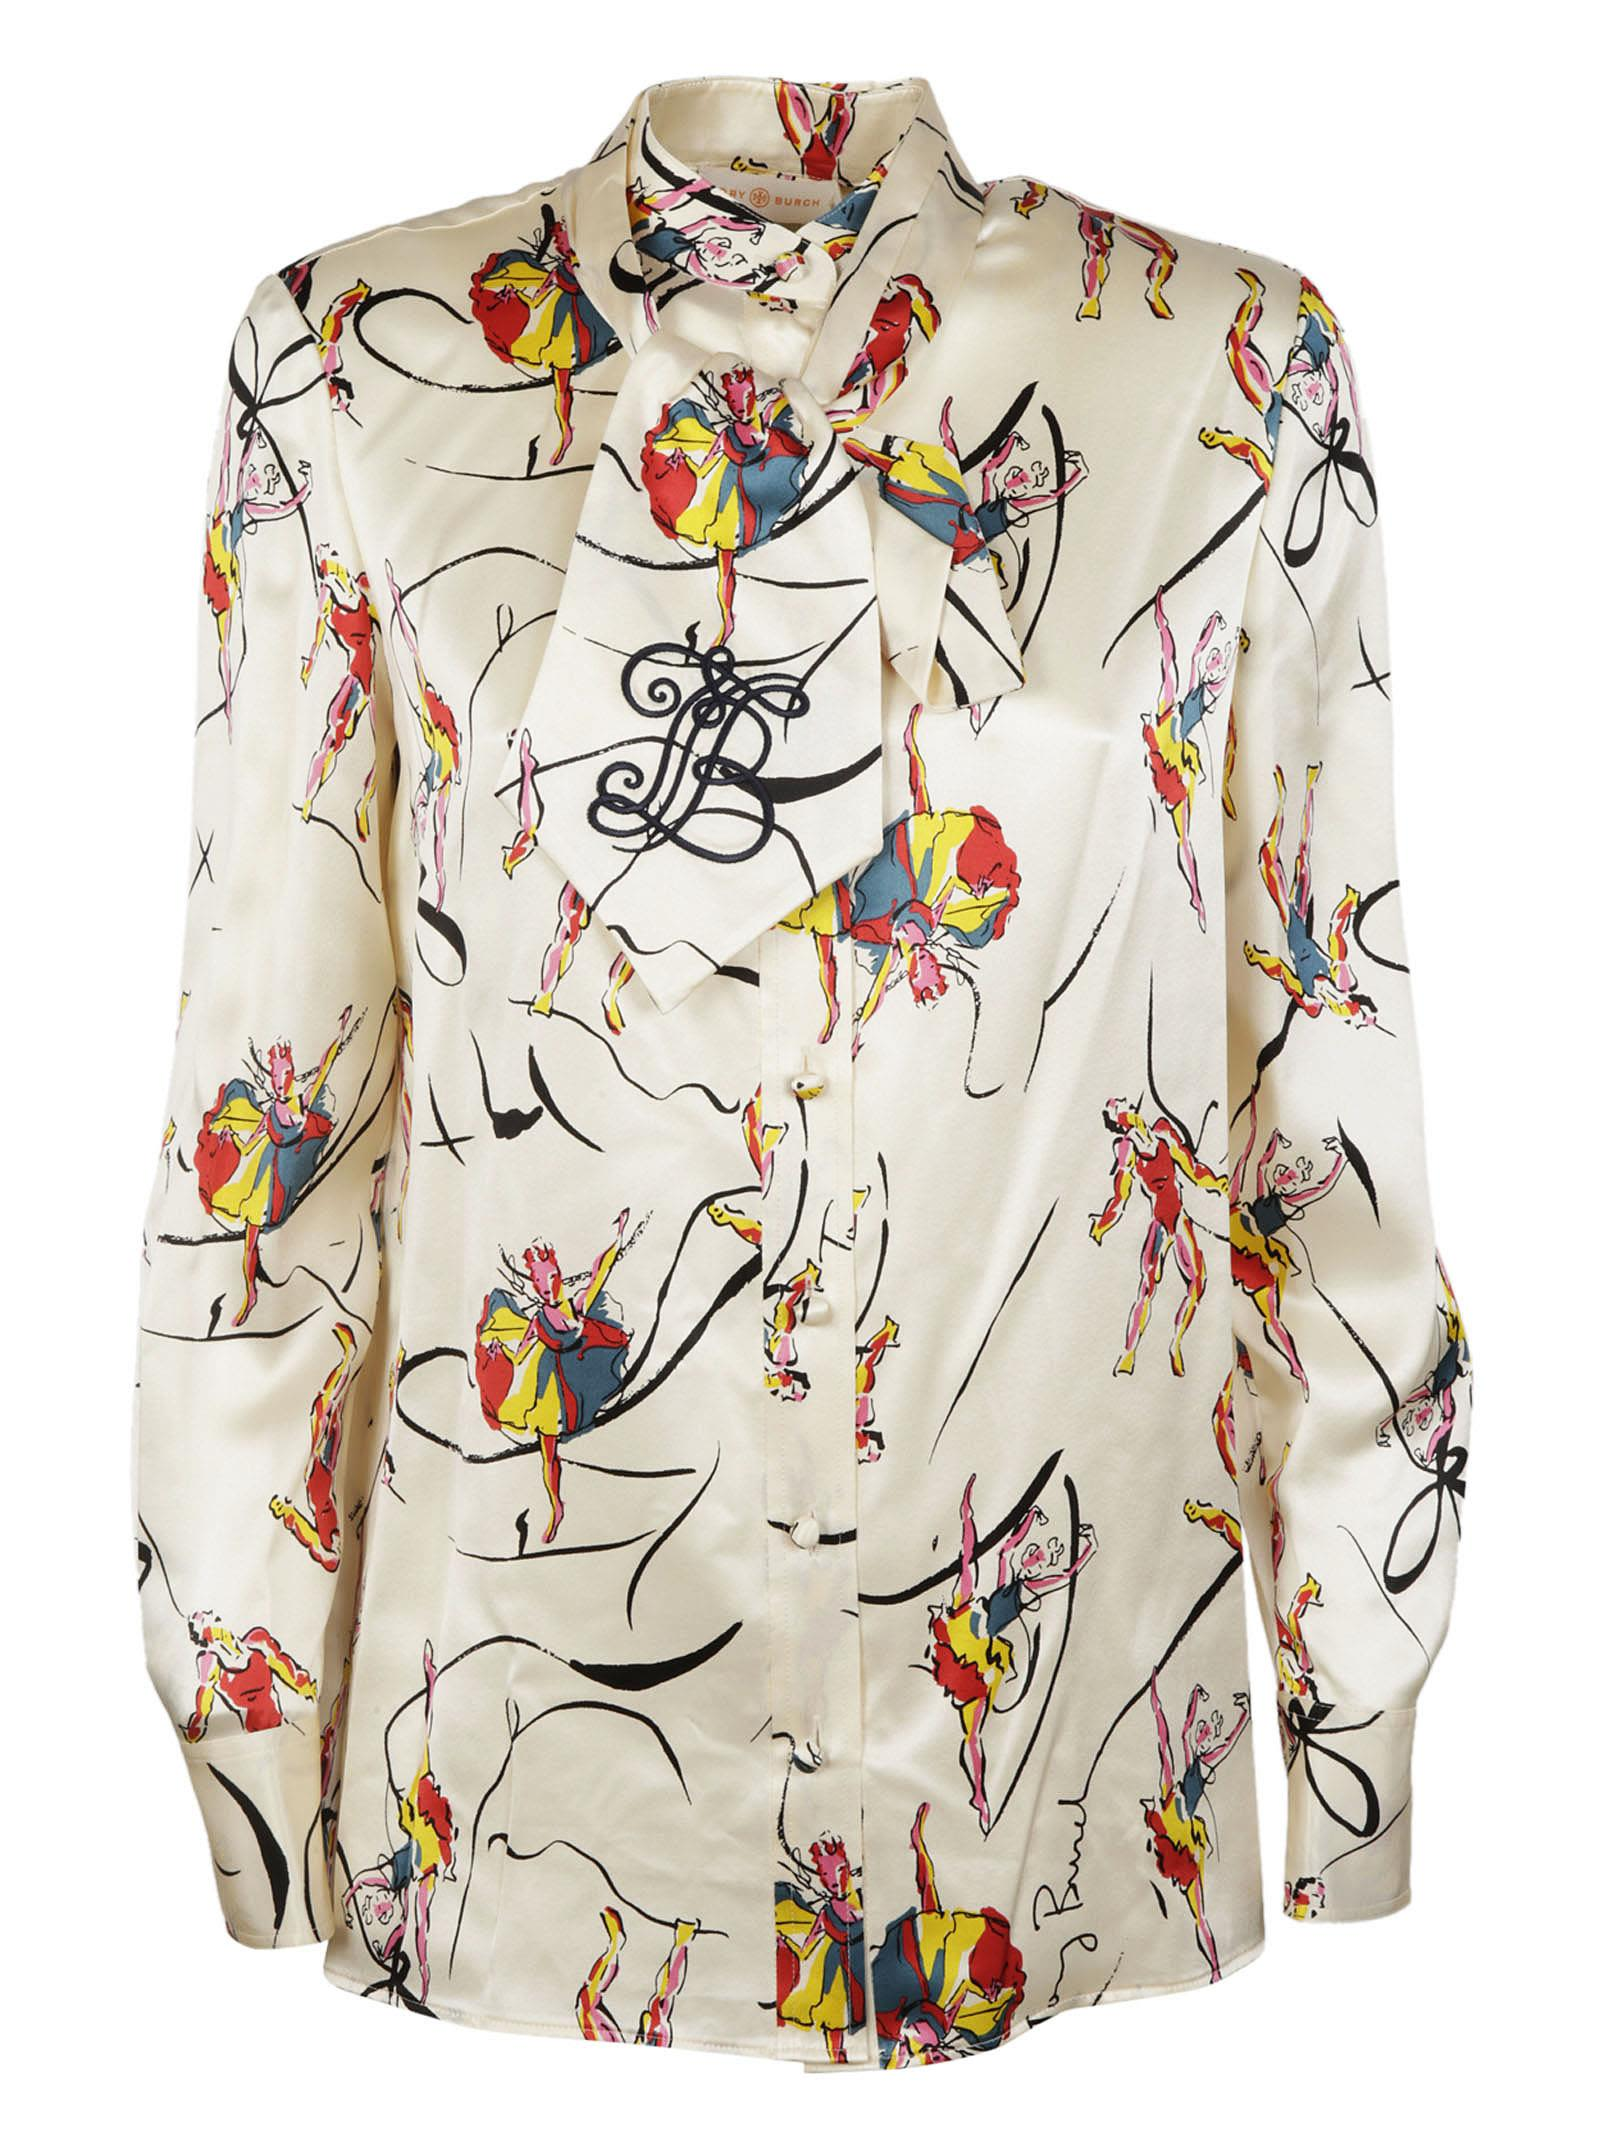 Tory Burch Dancer Print Blouse